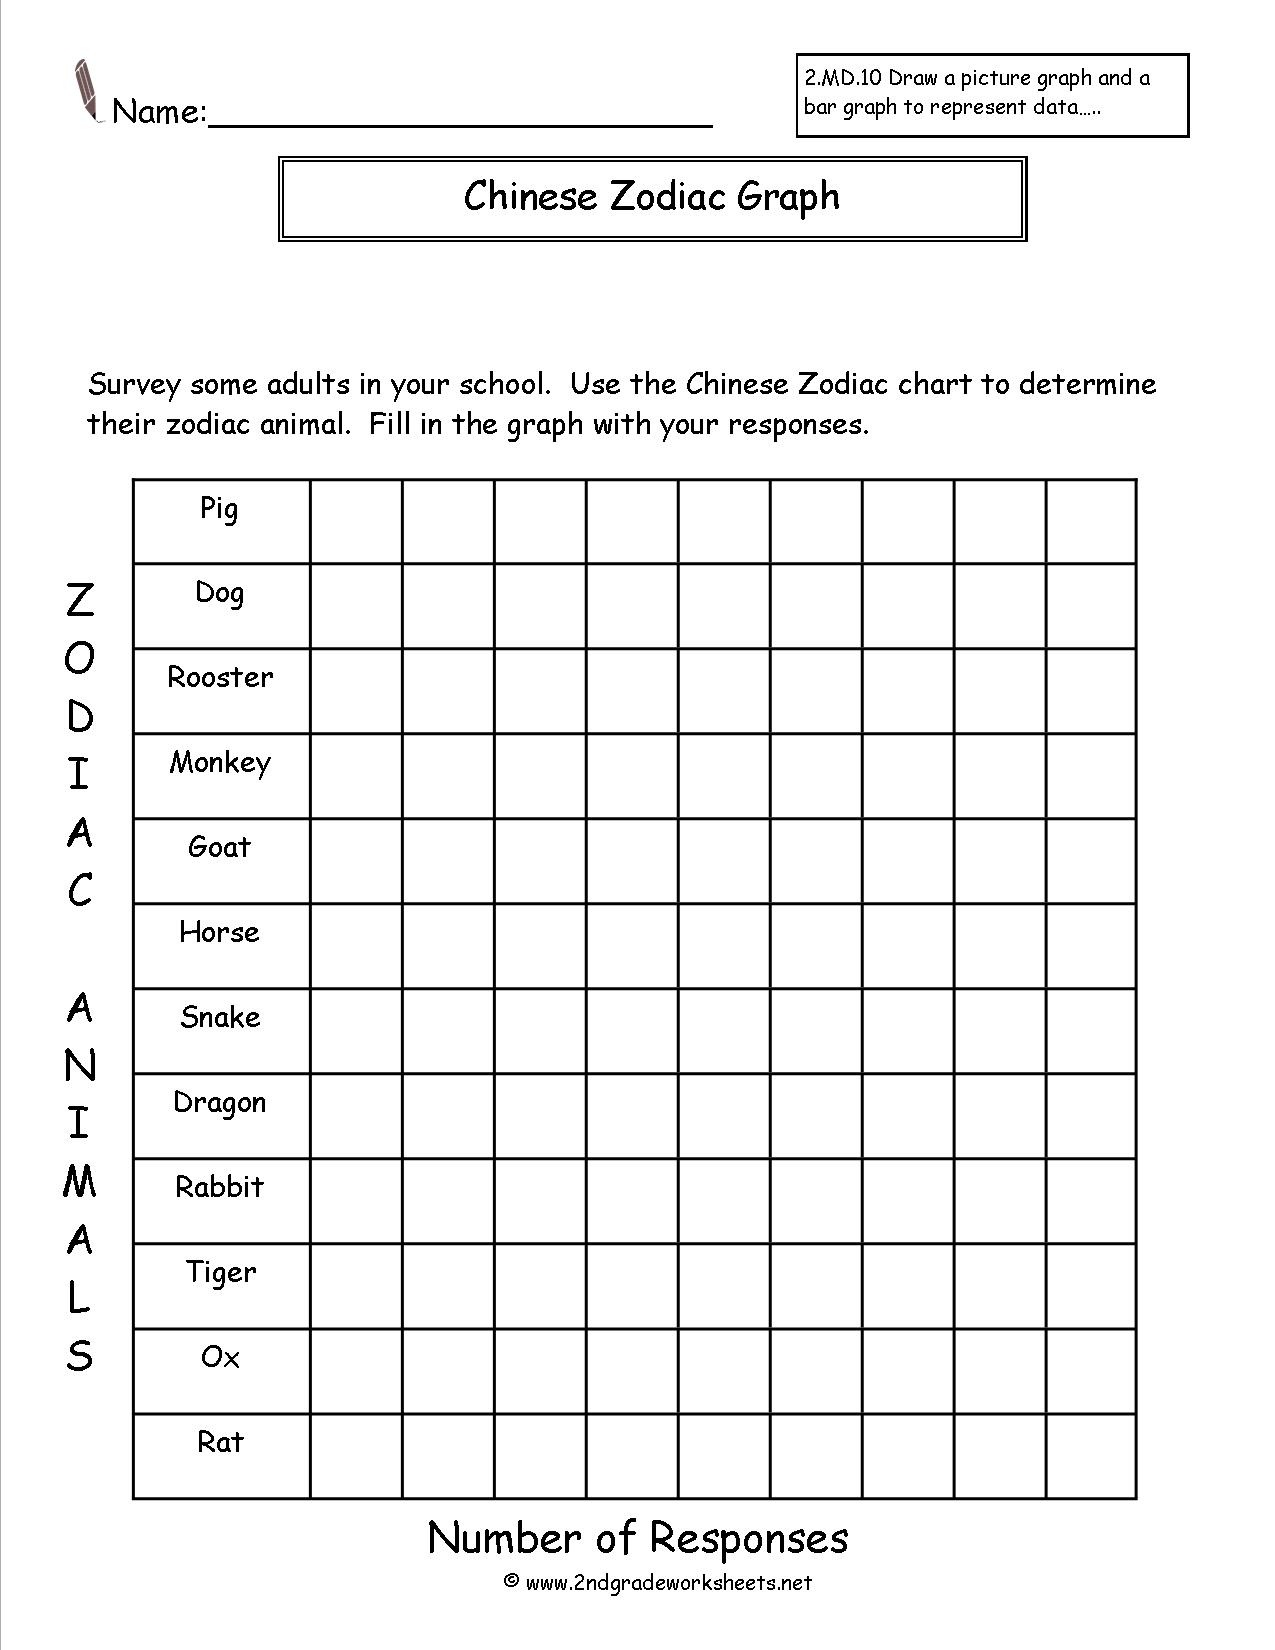 Free Reading And Creating Bar Graph Worksheets - Free Printable Blank Bar Graph Worksheets